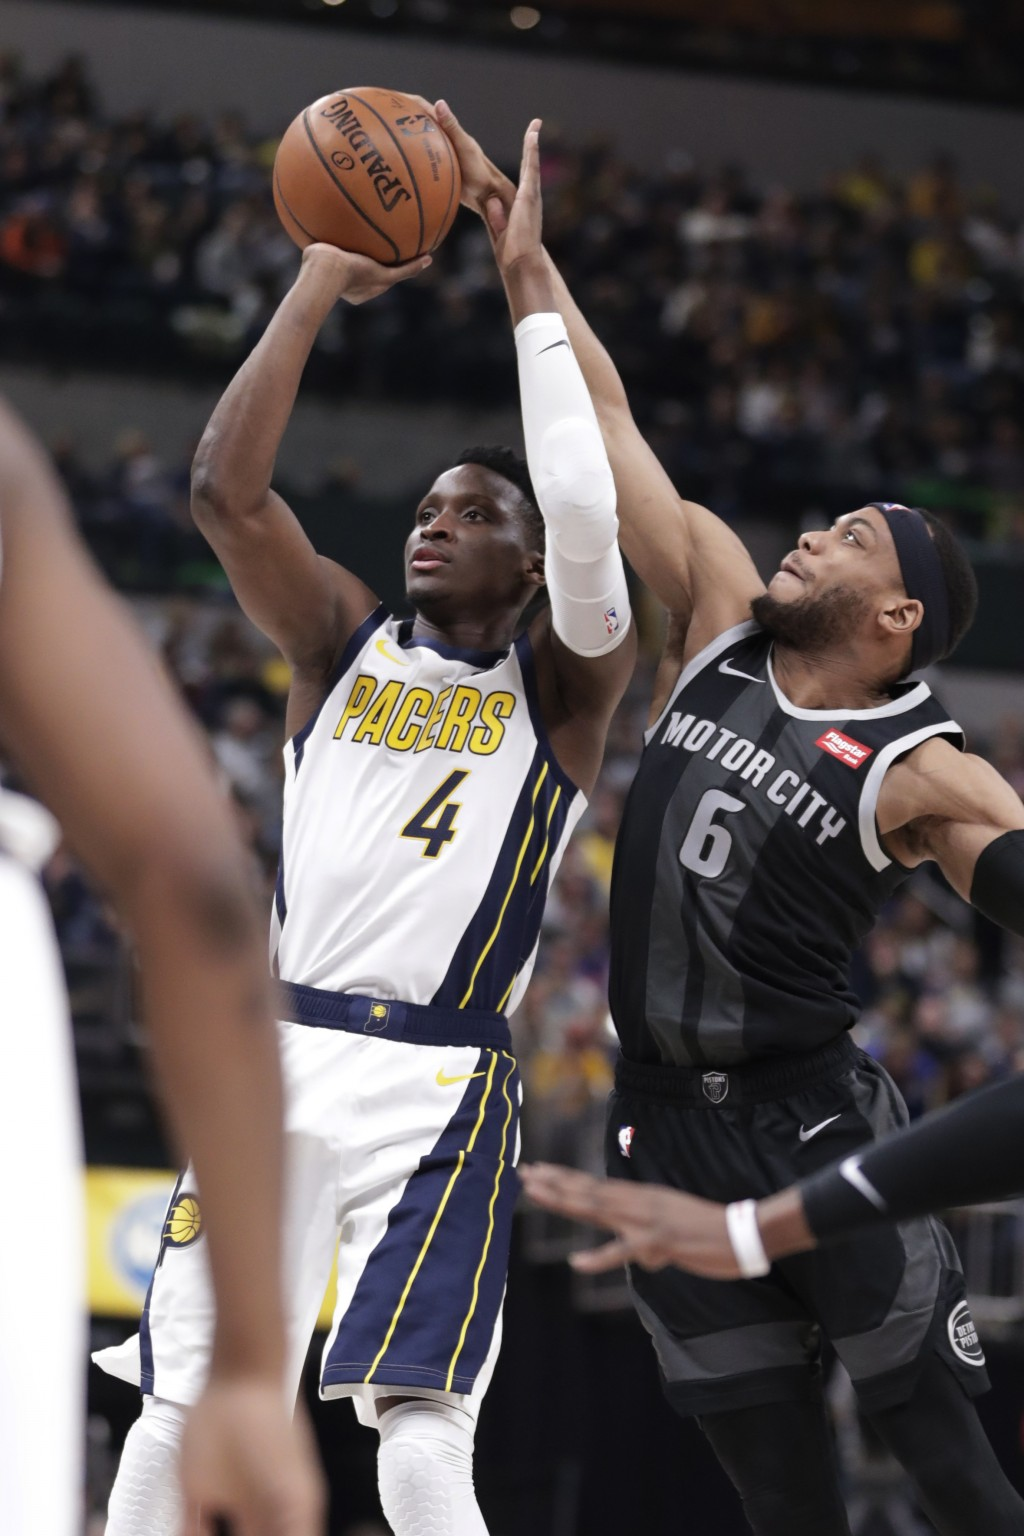 Indiana Pacers guard Victor Oladipo (4) is fouled by Detroit Pistons guard Bruce Brown (6) during the second half of an NBA basketball game in Indiana...